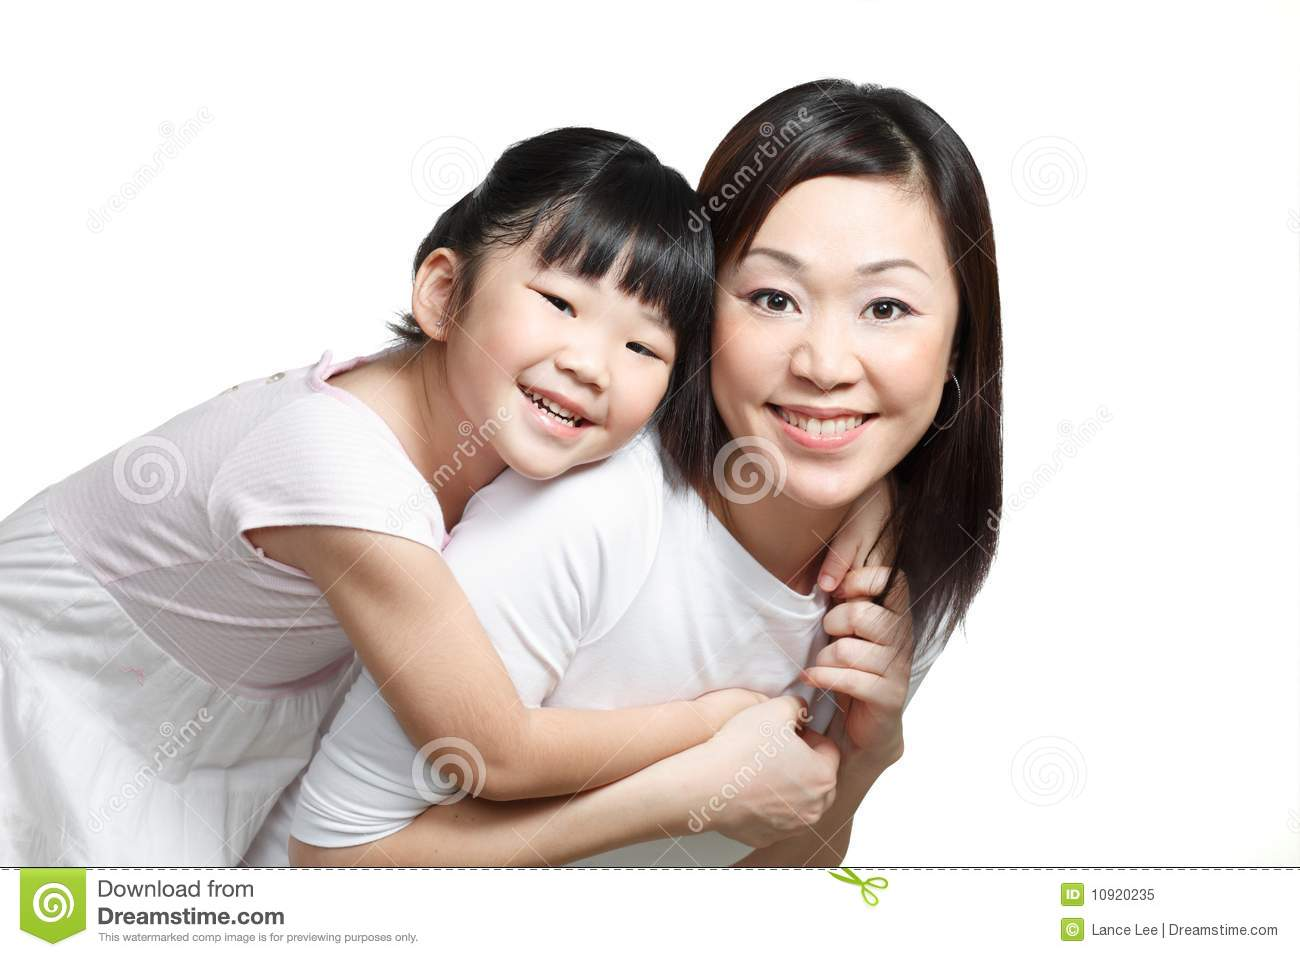 Chinese mother and daughter smiling and playing